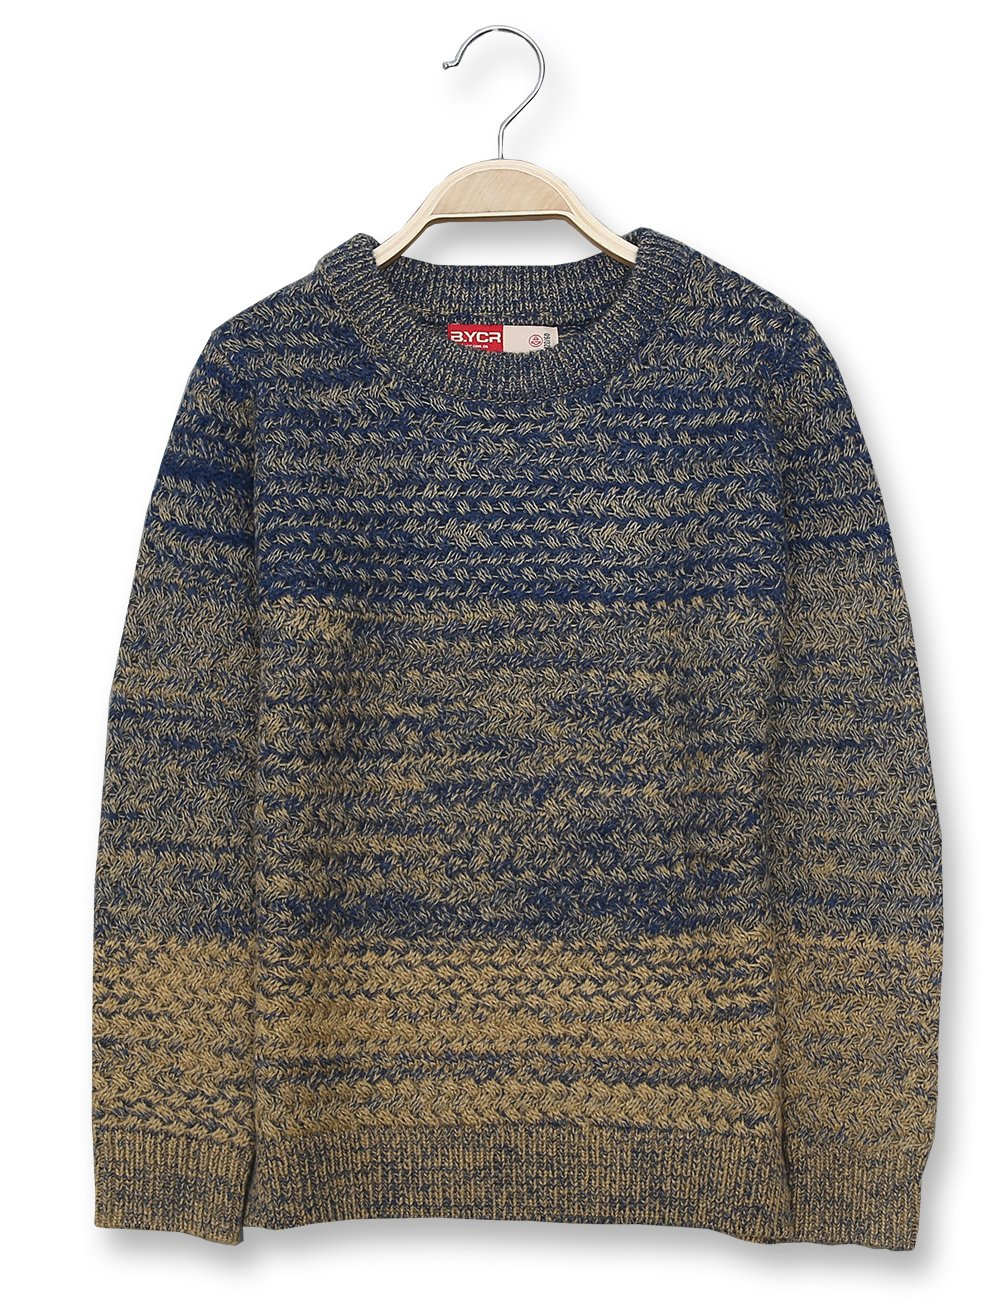 BYCR Boys' Fashion Warm Pullover Crew Neck Knitted Sweater No. 7157100782 (150 (US Size 10), Blue)